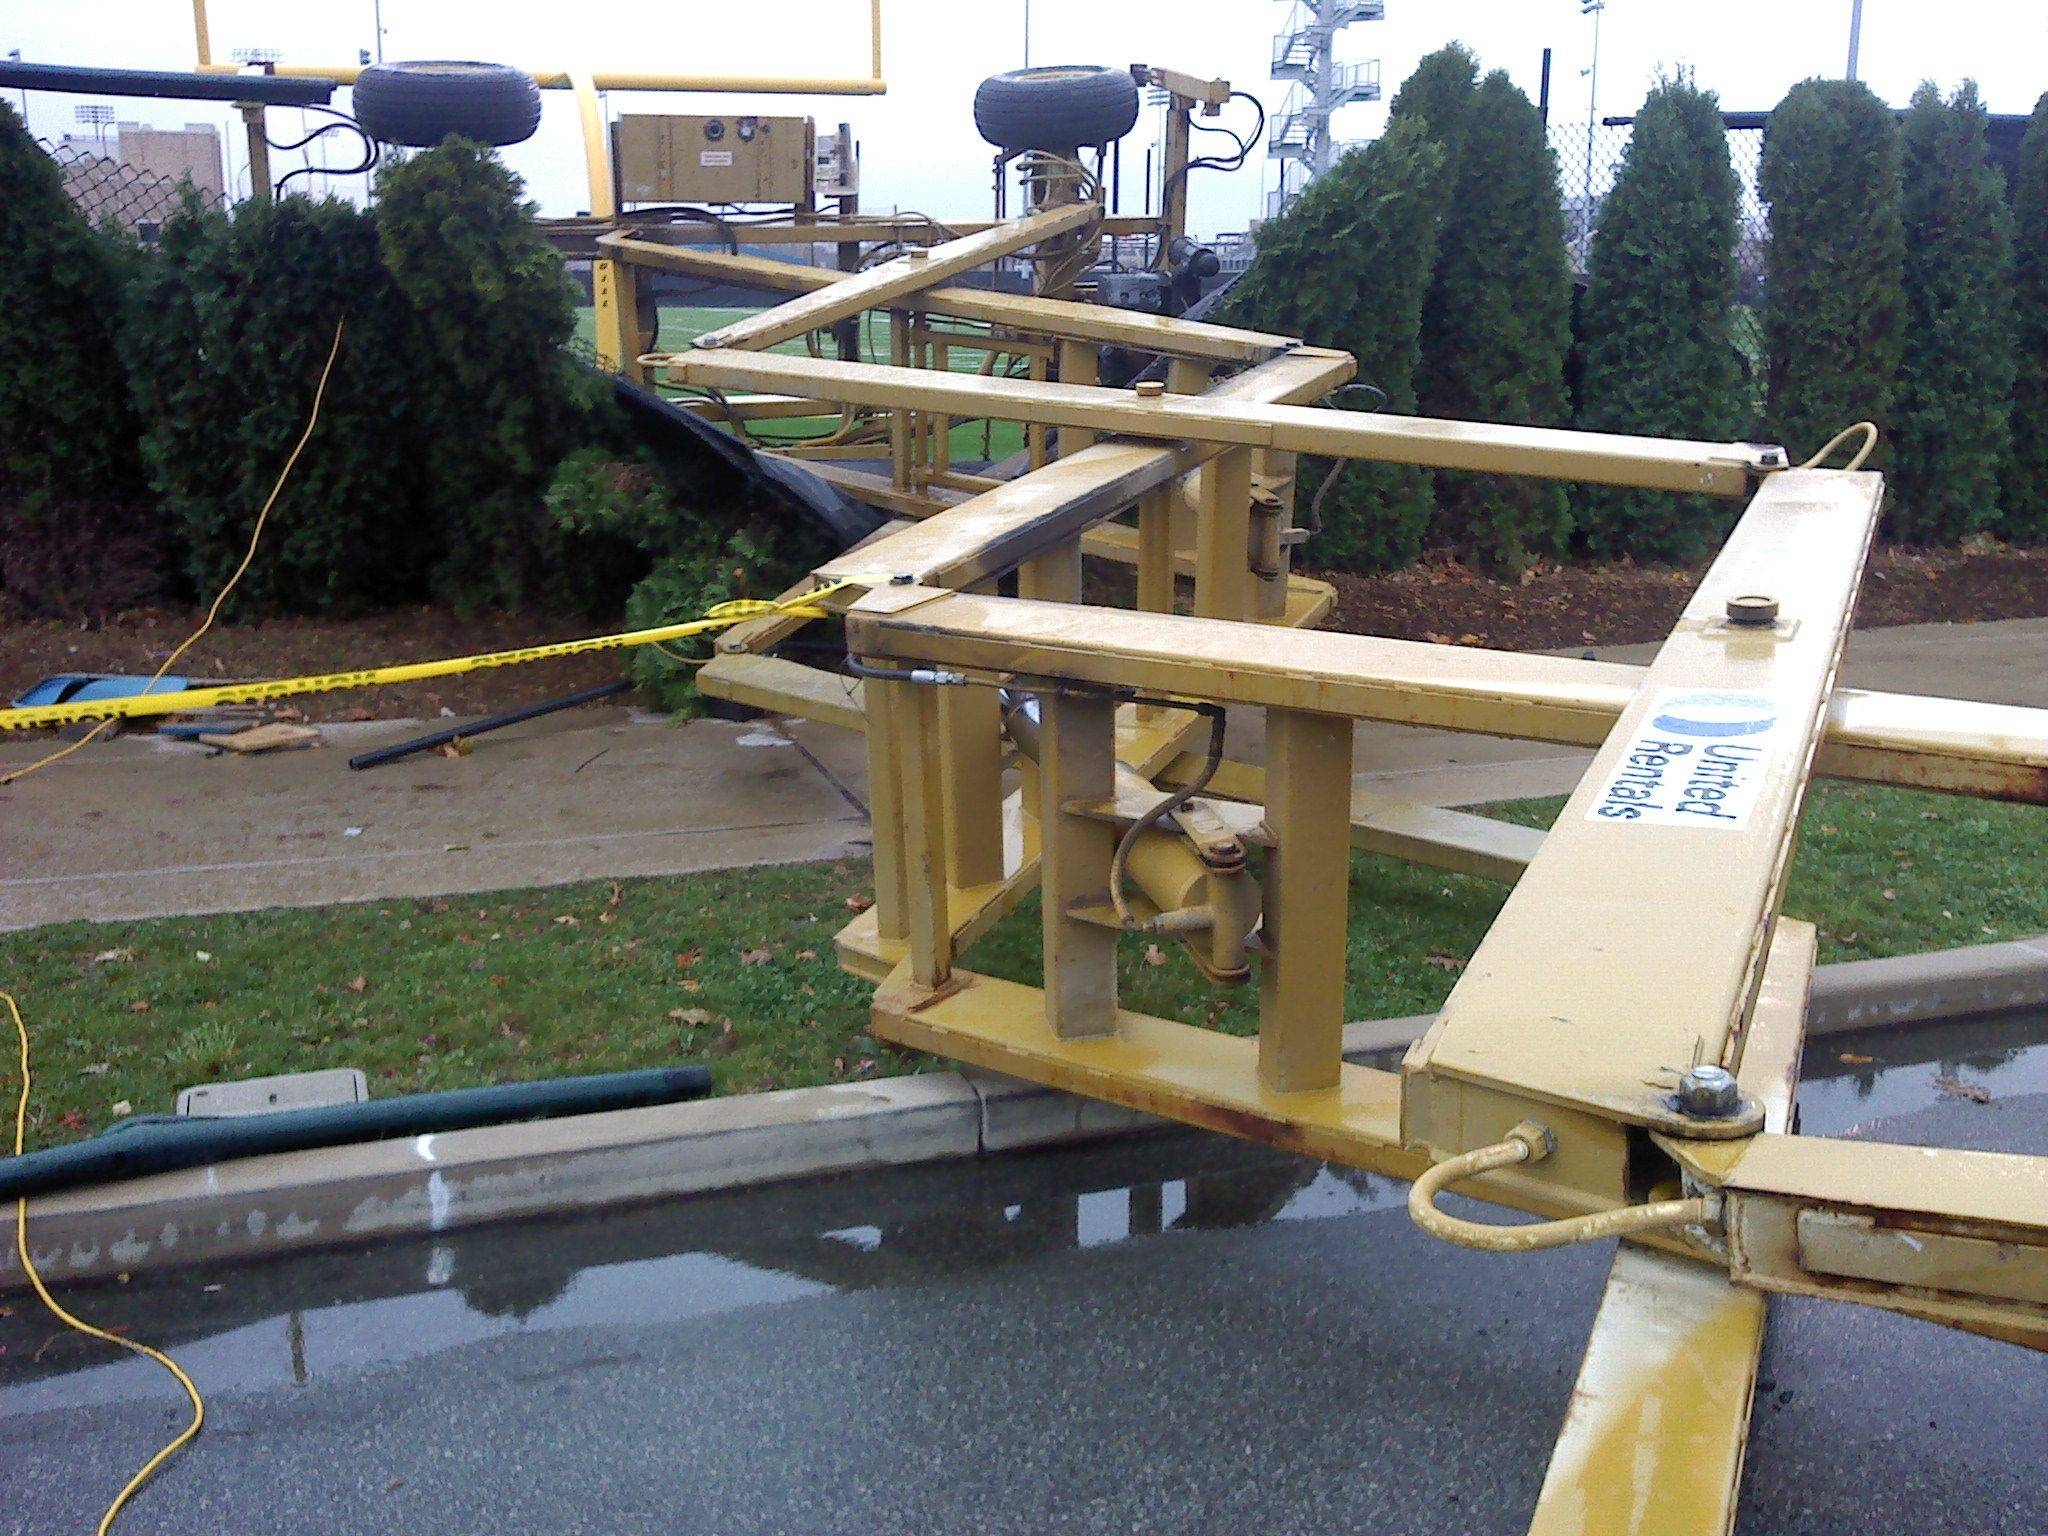 In an Oct. 27, 2010, file photo provided by the Indiana Department of Labor, a hydraulic lift lies on its side after an accident that killed Notre Dame student Declan Sullivan of Long Grove. Notre Dame, with help from Sullivan's family, has launched an aerial lift safety program.